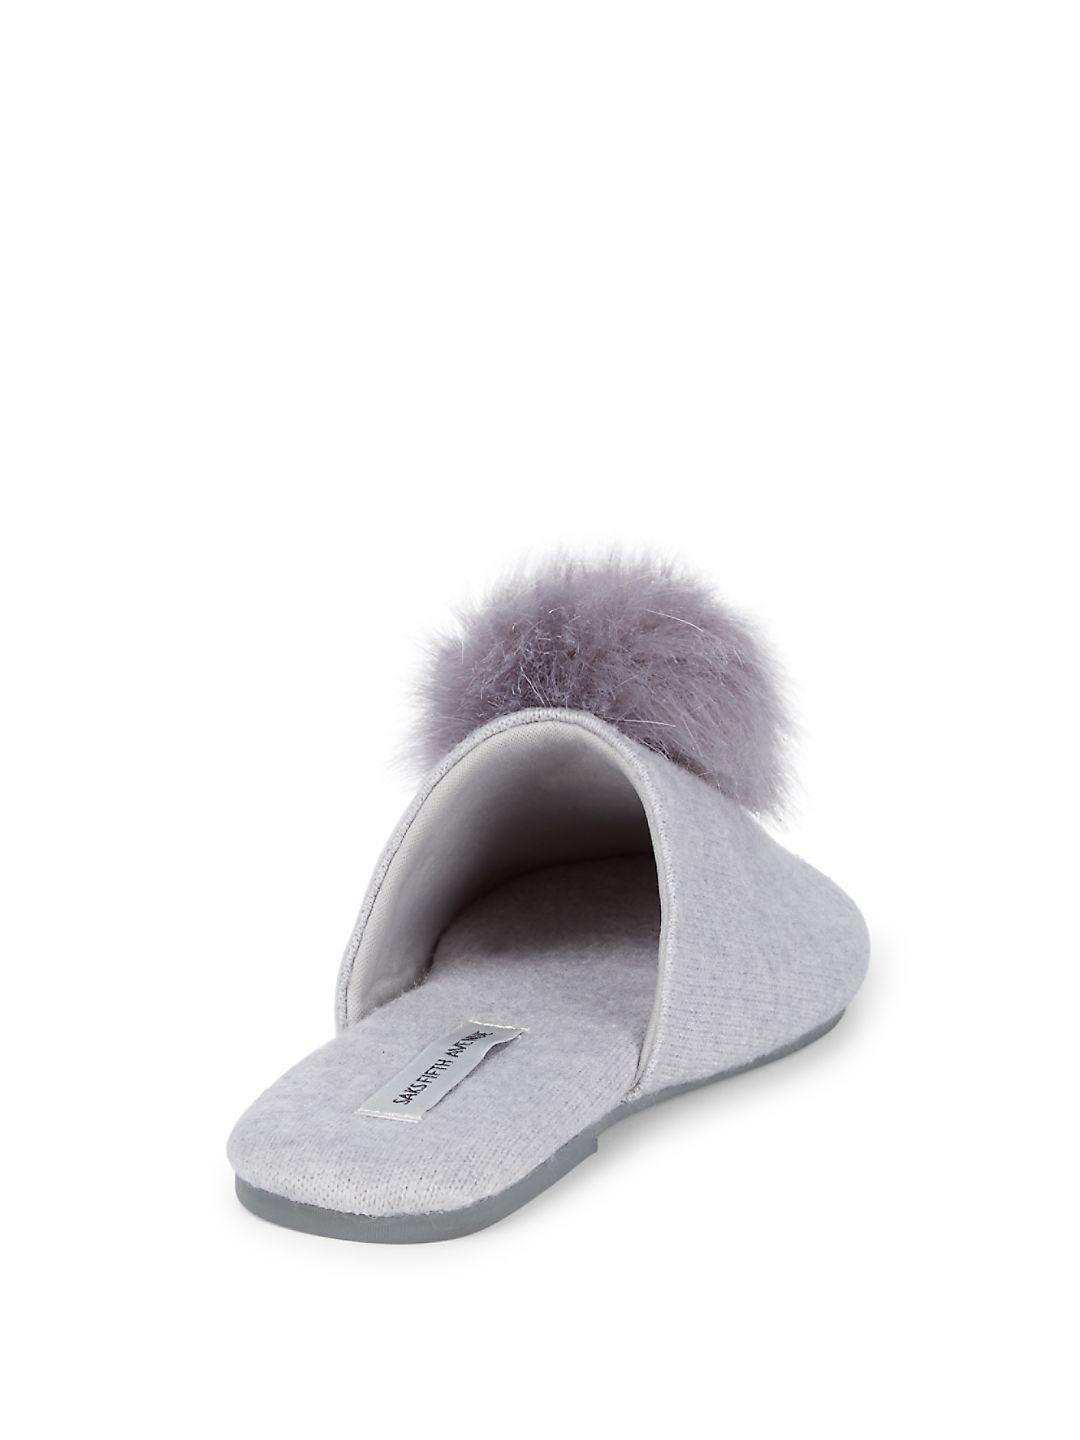 4a8cbc0782b Lyst - Saks Fifth Avenue Faux Fur Pom Slippers